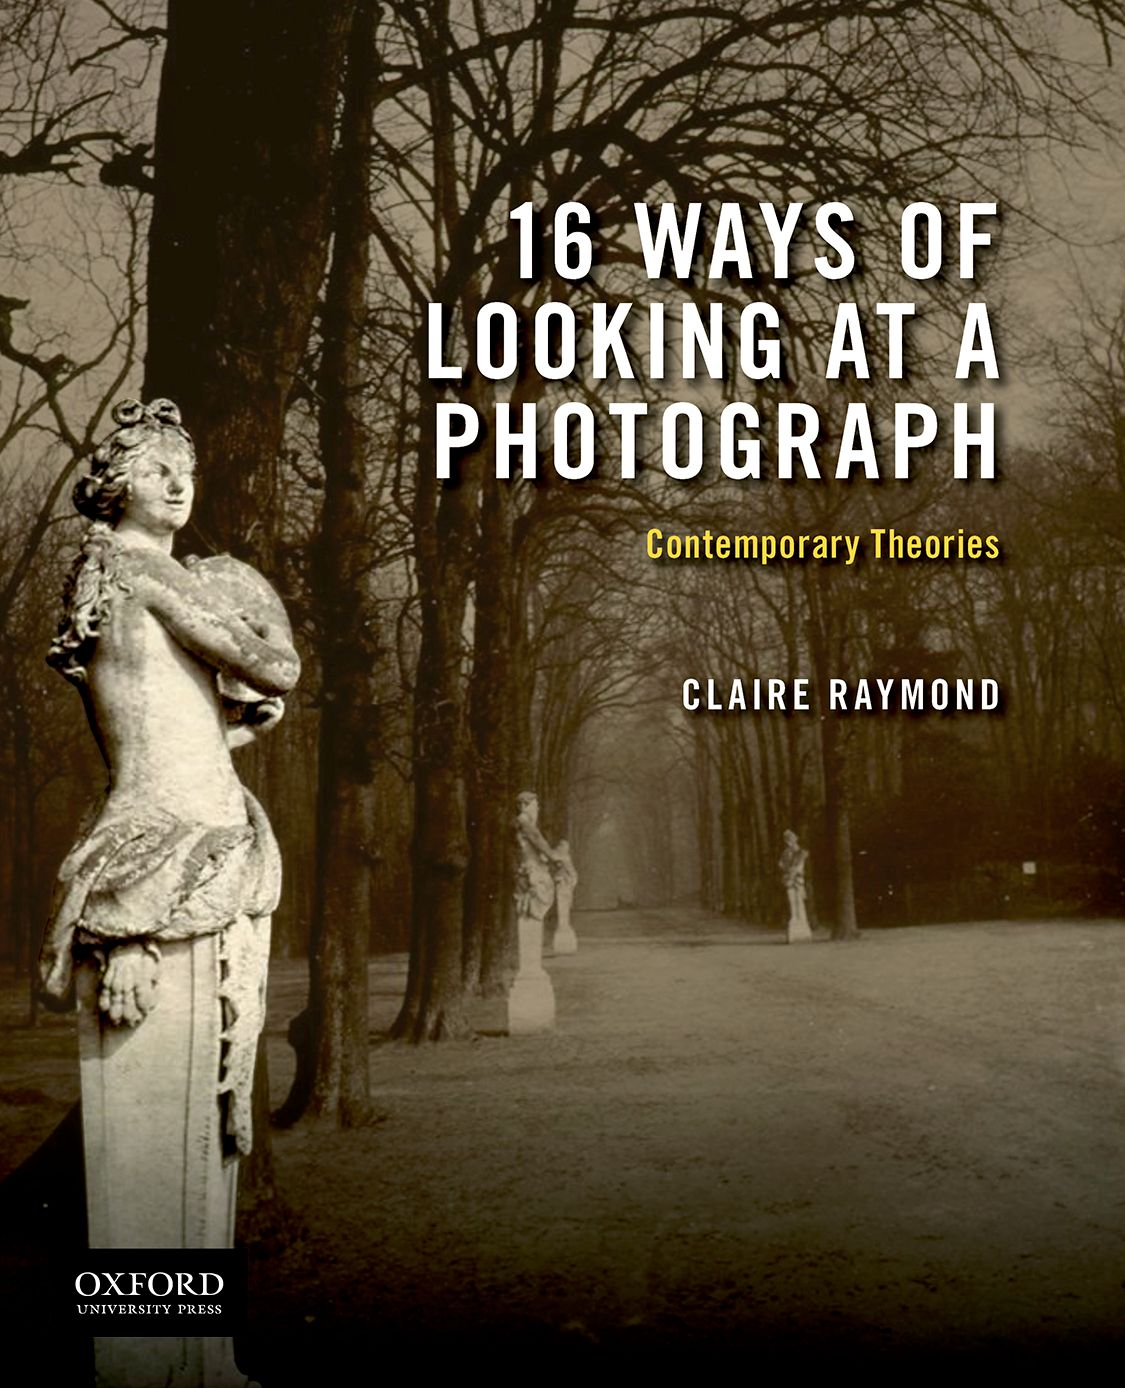 16 Ways of Looking at a Photograph Student Resources